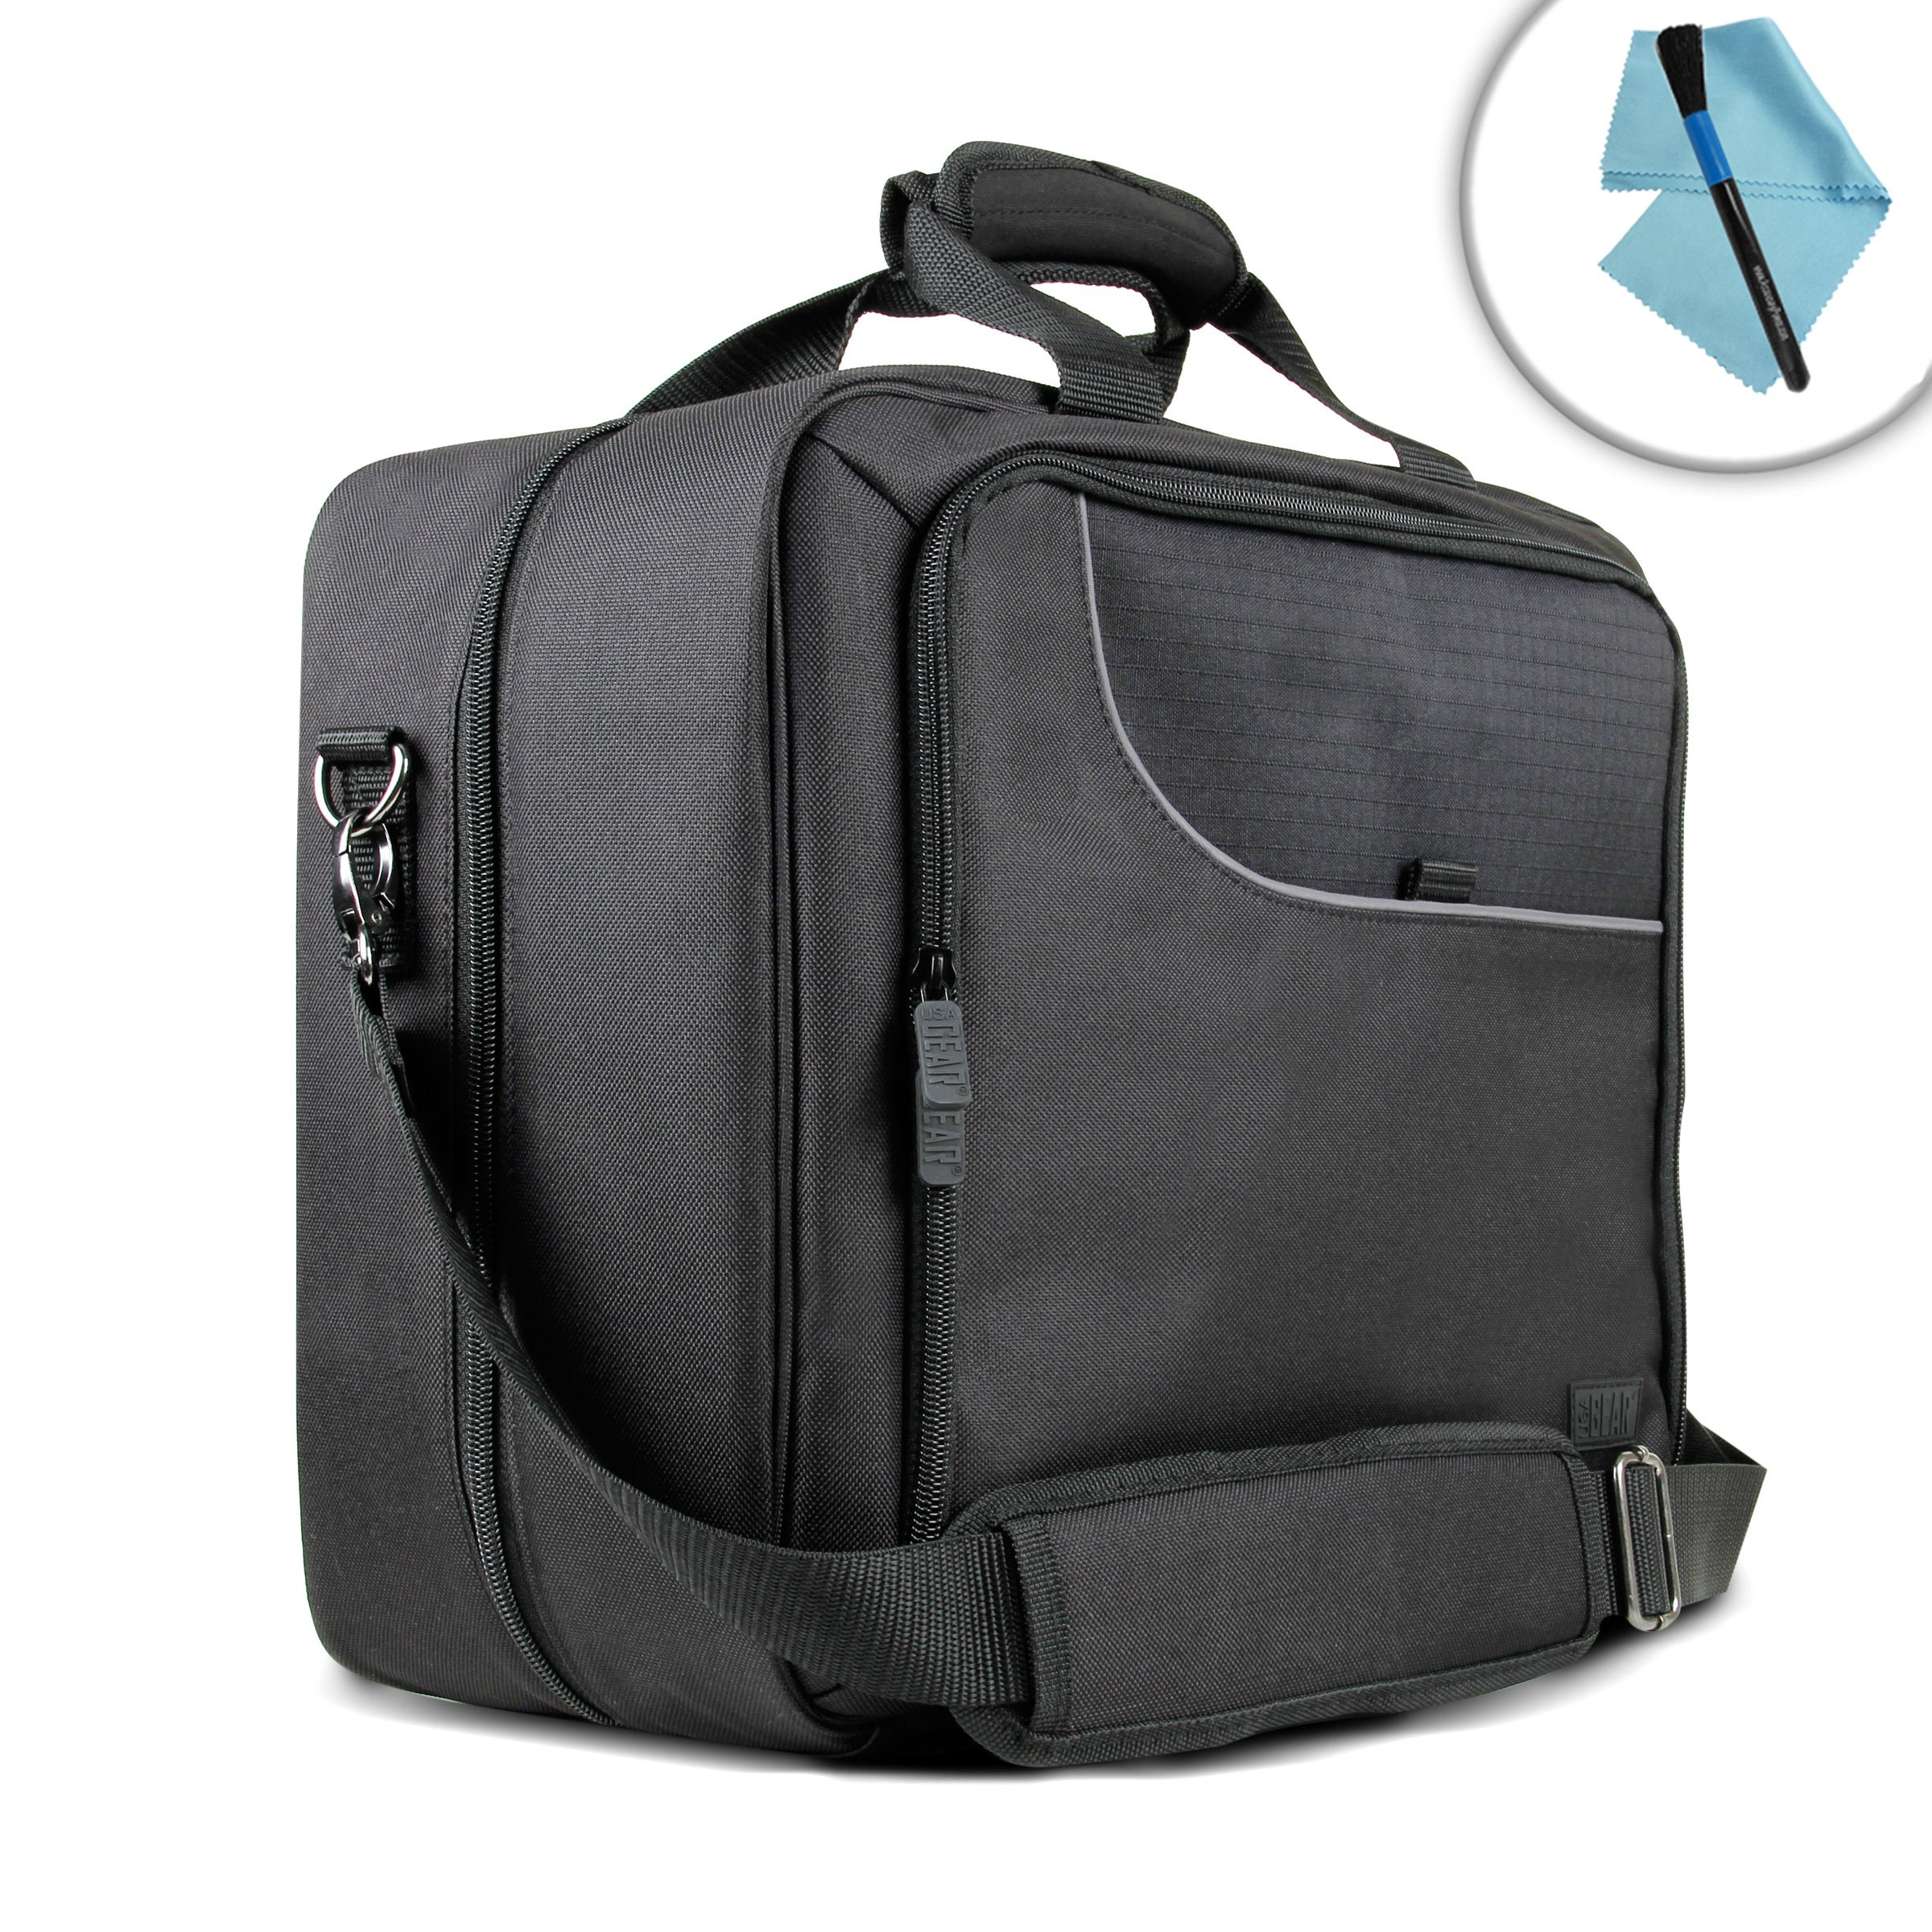 USA Gear Mobile Printer Case for Epson WorkForce WF-100 and Accessories with Carrying Strap , Padded Scratch-Resistant Lining - Storage for Paper , Power Adapter , Ink Cartridges